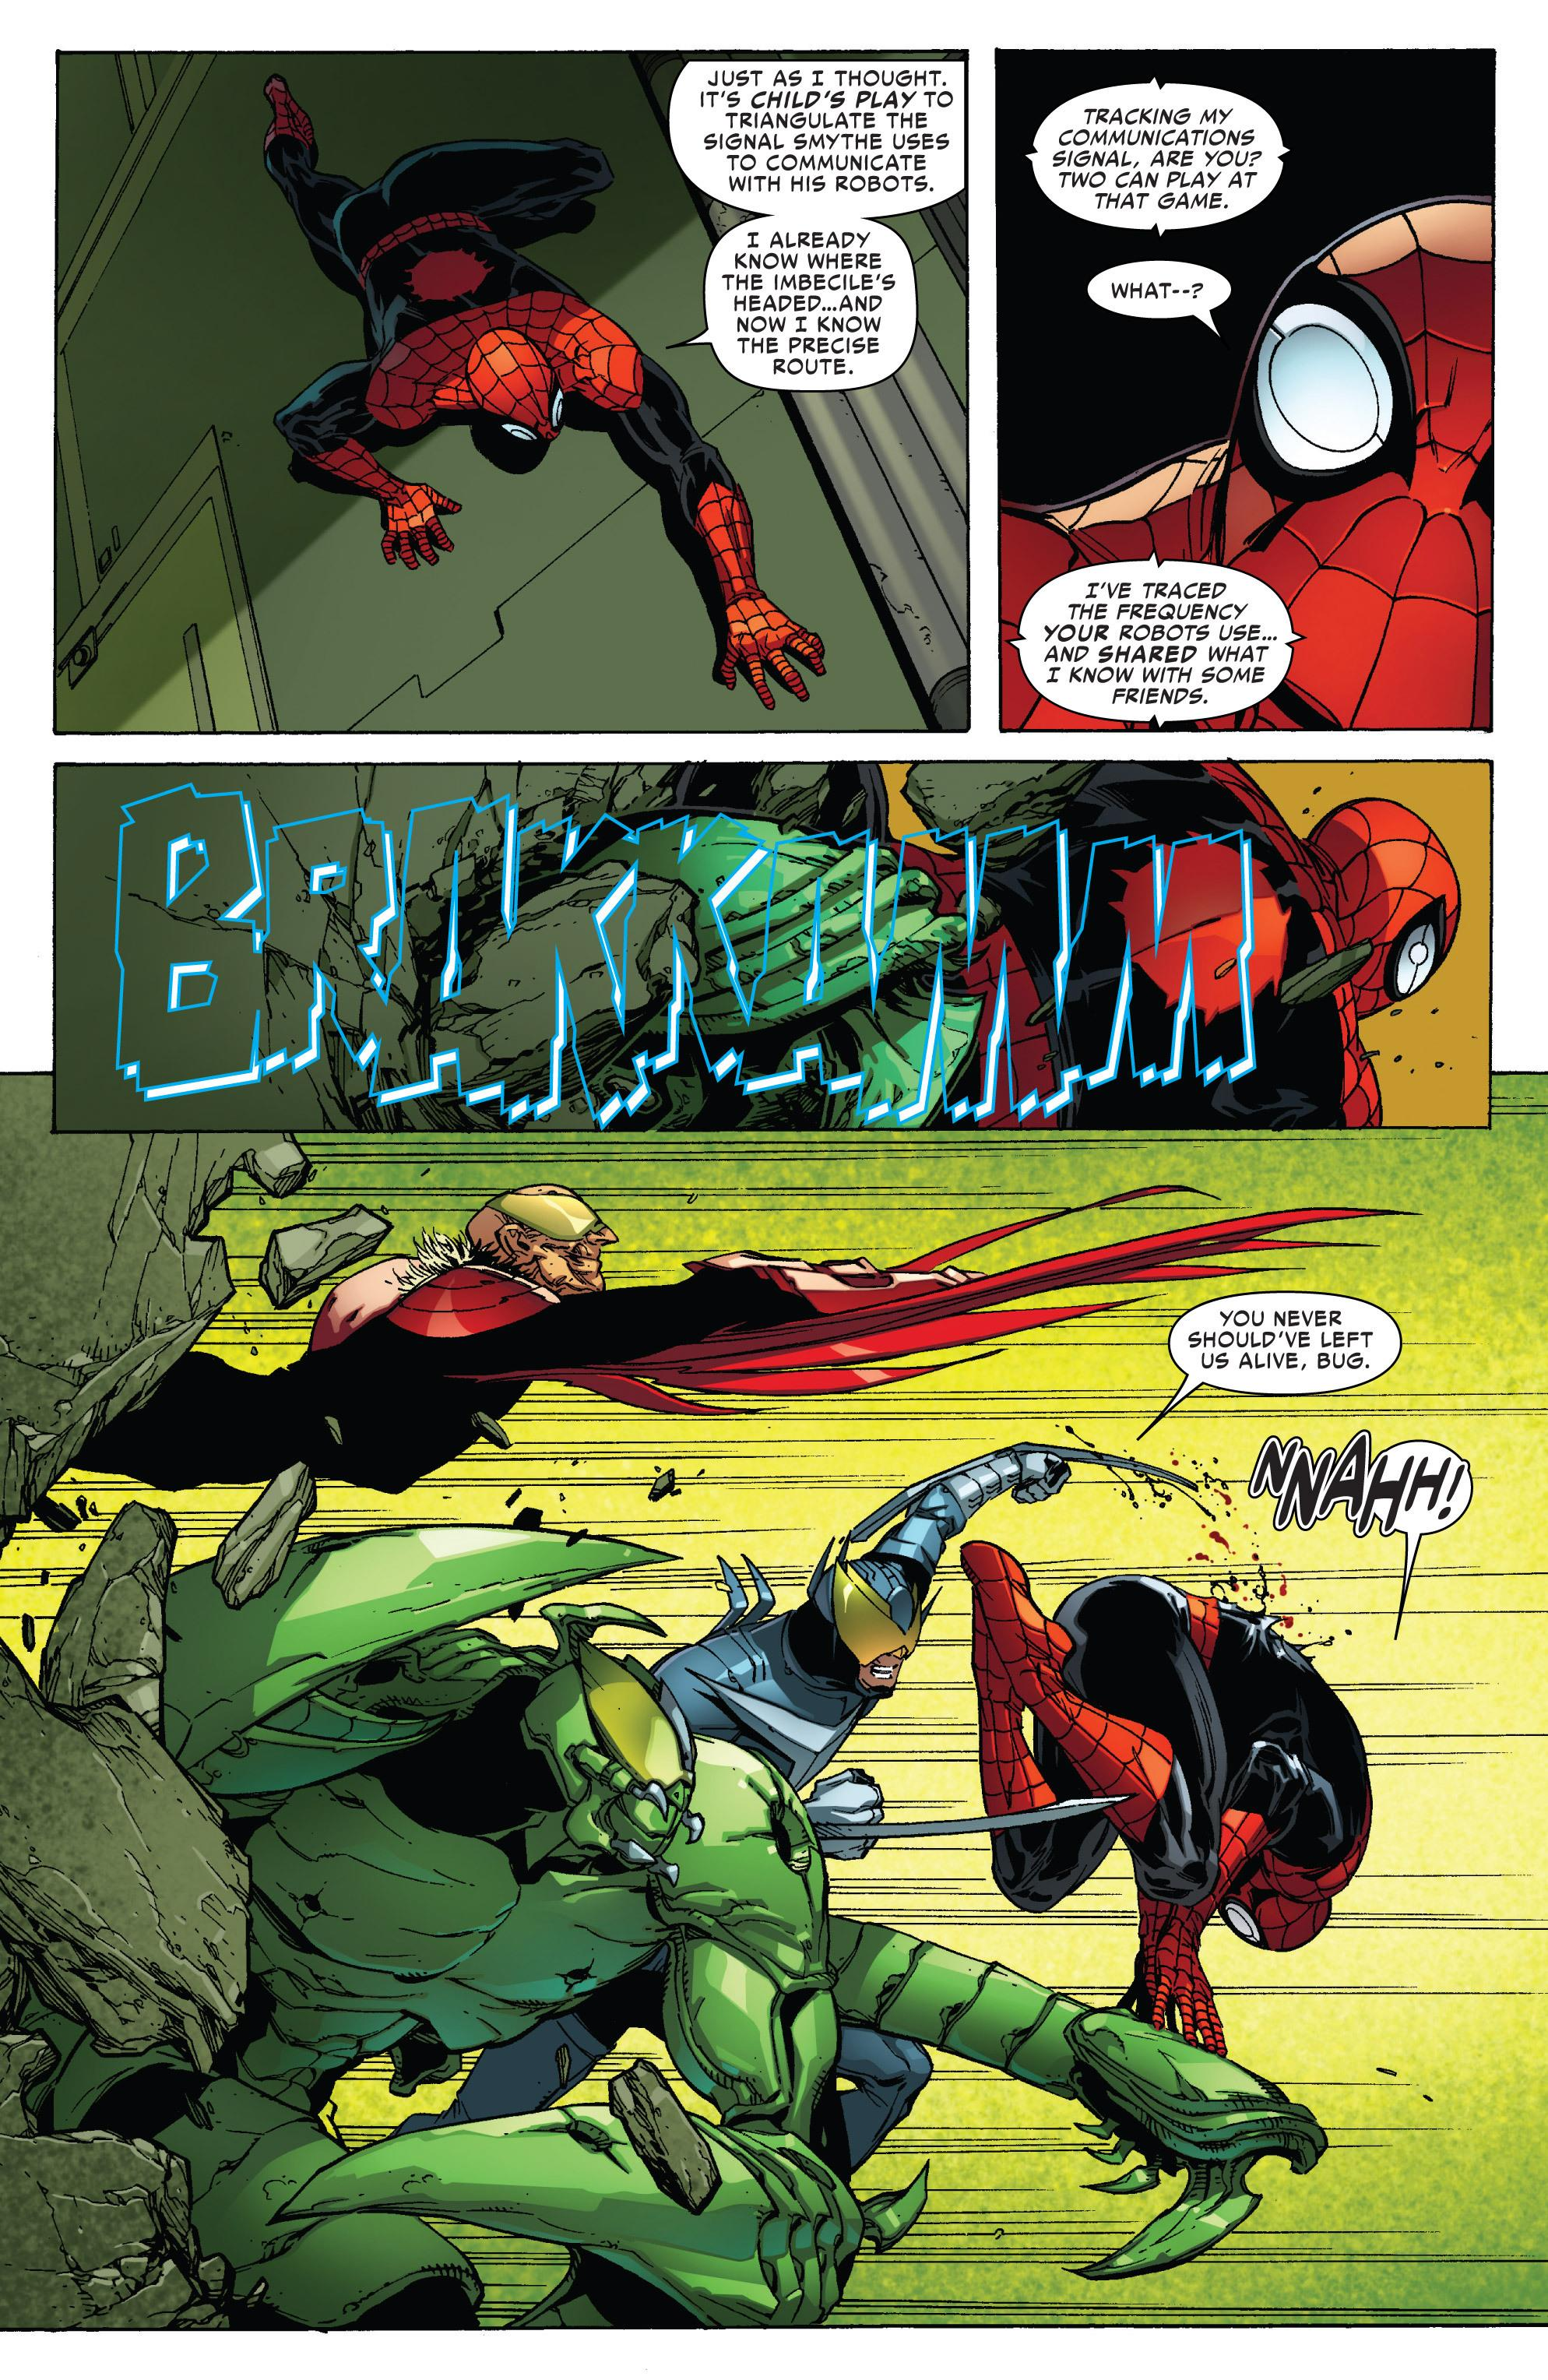 The Superior Spider-Man 3 No Escape review